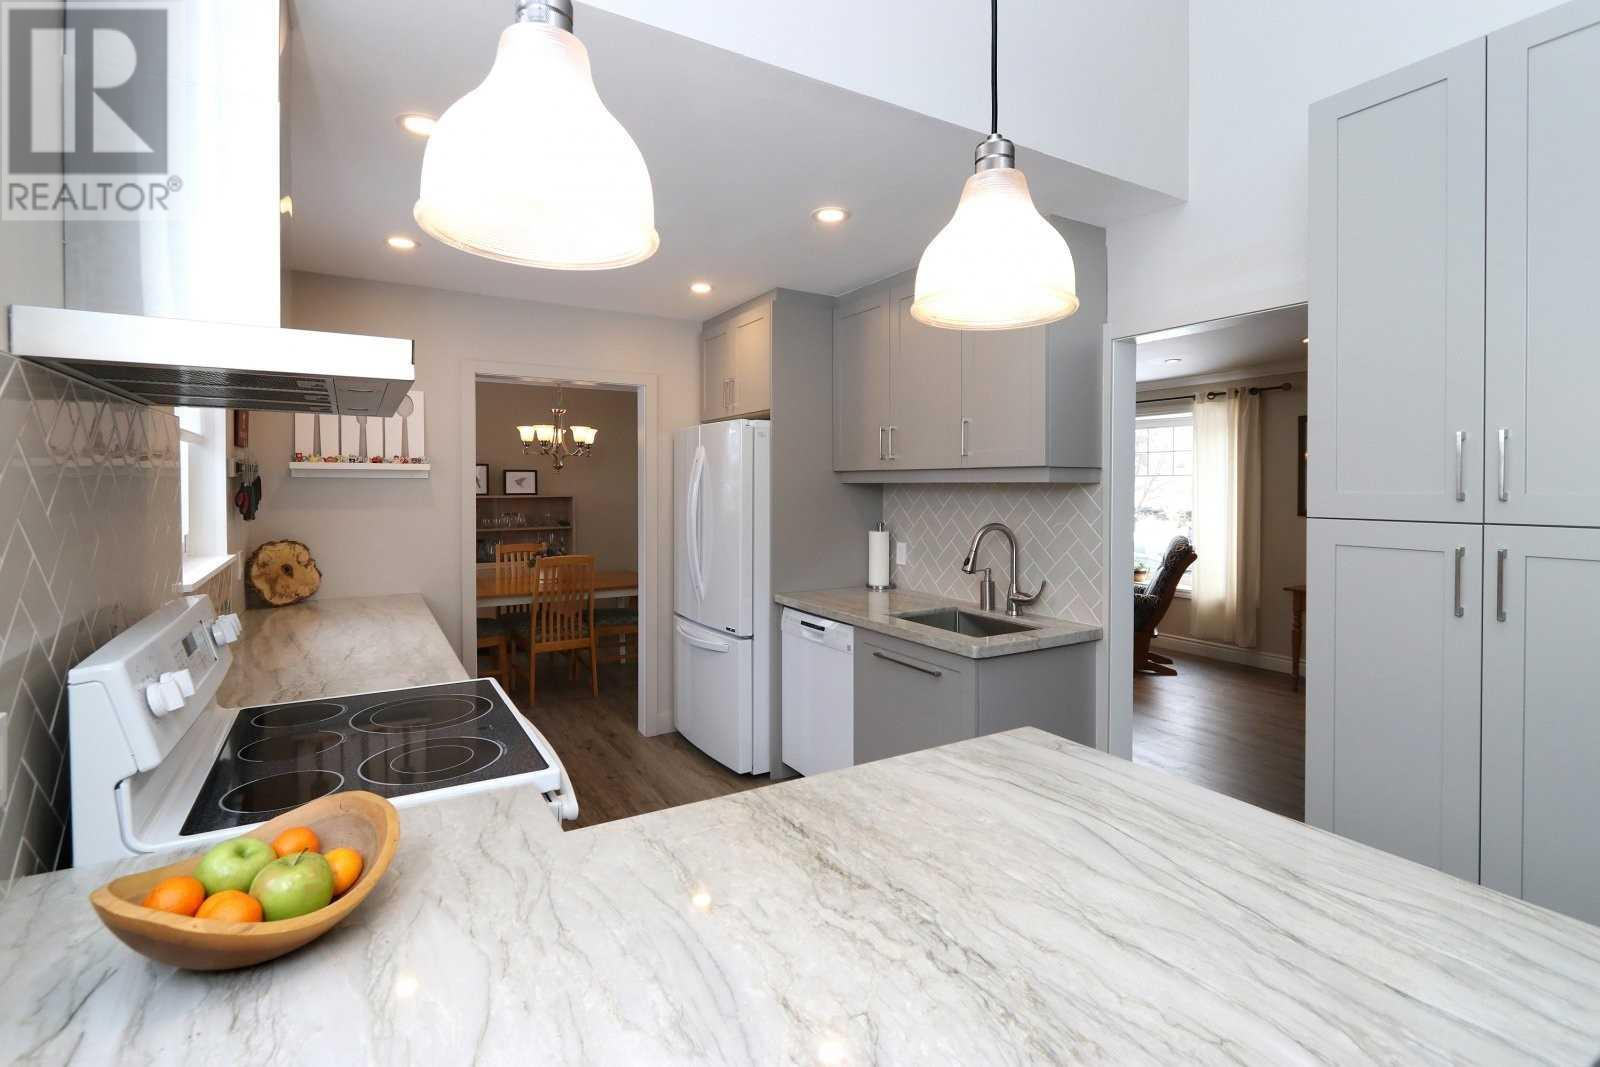 2524 Windjammer Rd, Mississauga, Ontario  L5L 1H9 - Photo 7 - W4675885